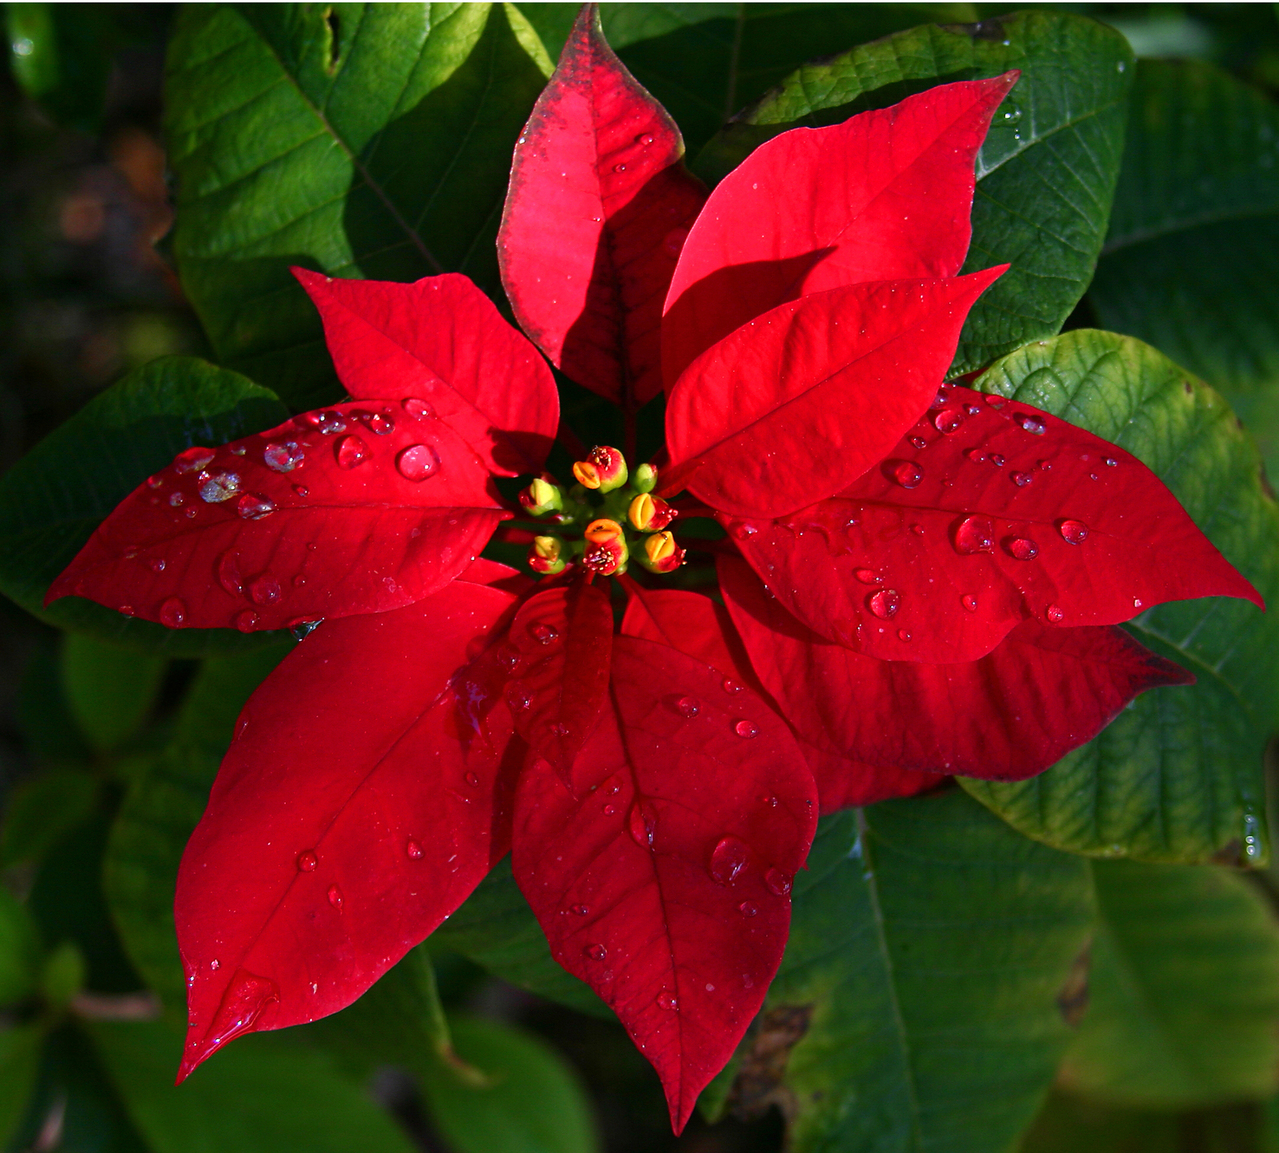 All about pretty Poinsettias